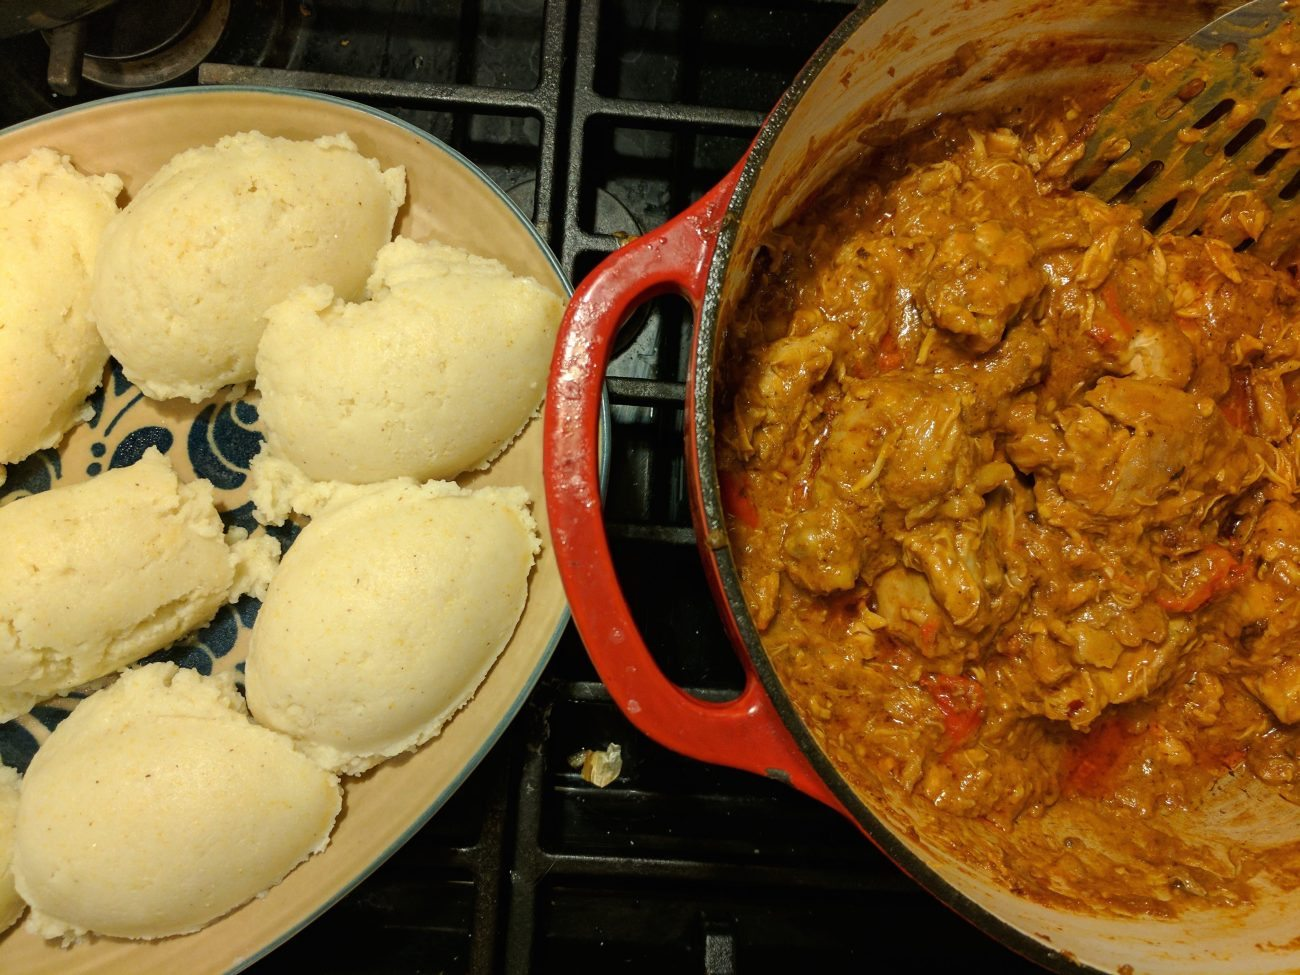 Sierra Leone & Kenya: Groundnut Stew with Ugali